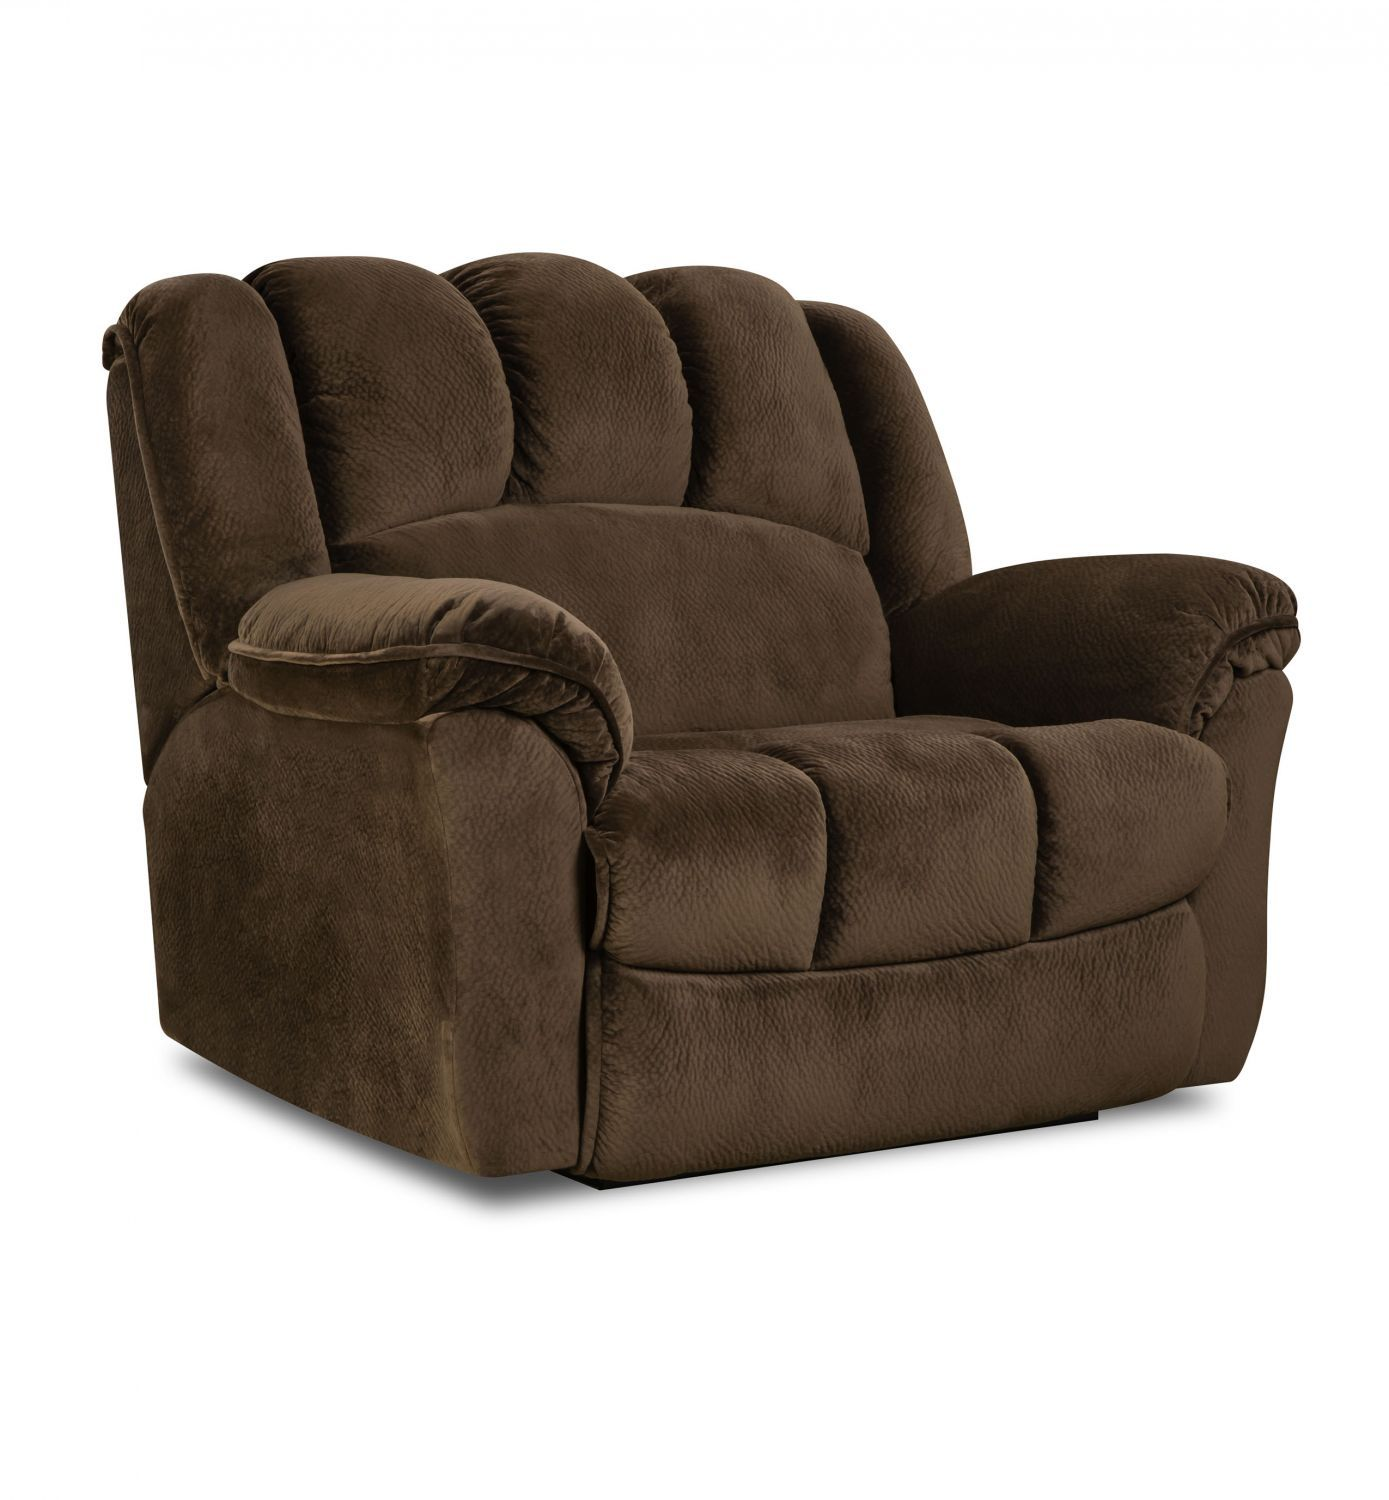 Etonnant This Oversized Snuggler Recliner Is Just Big Enough For Two, Featuring  Plush Fabric And A Full Chaise | $598 | FFO Home